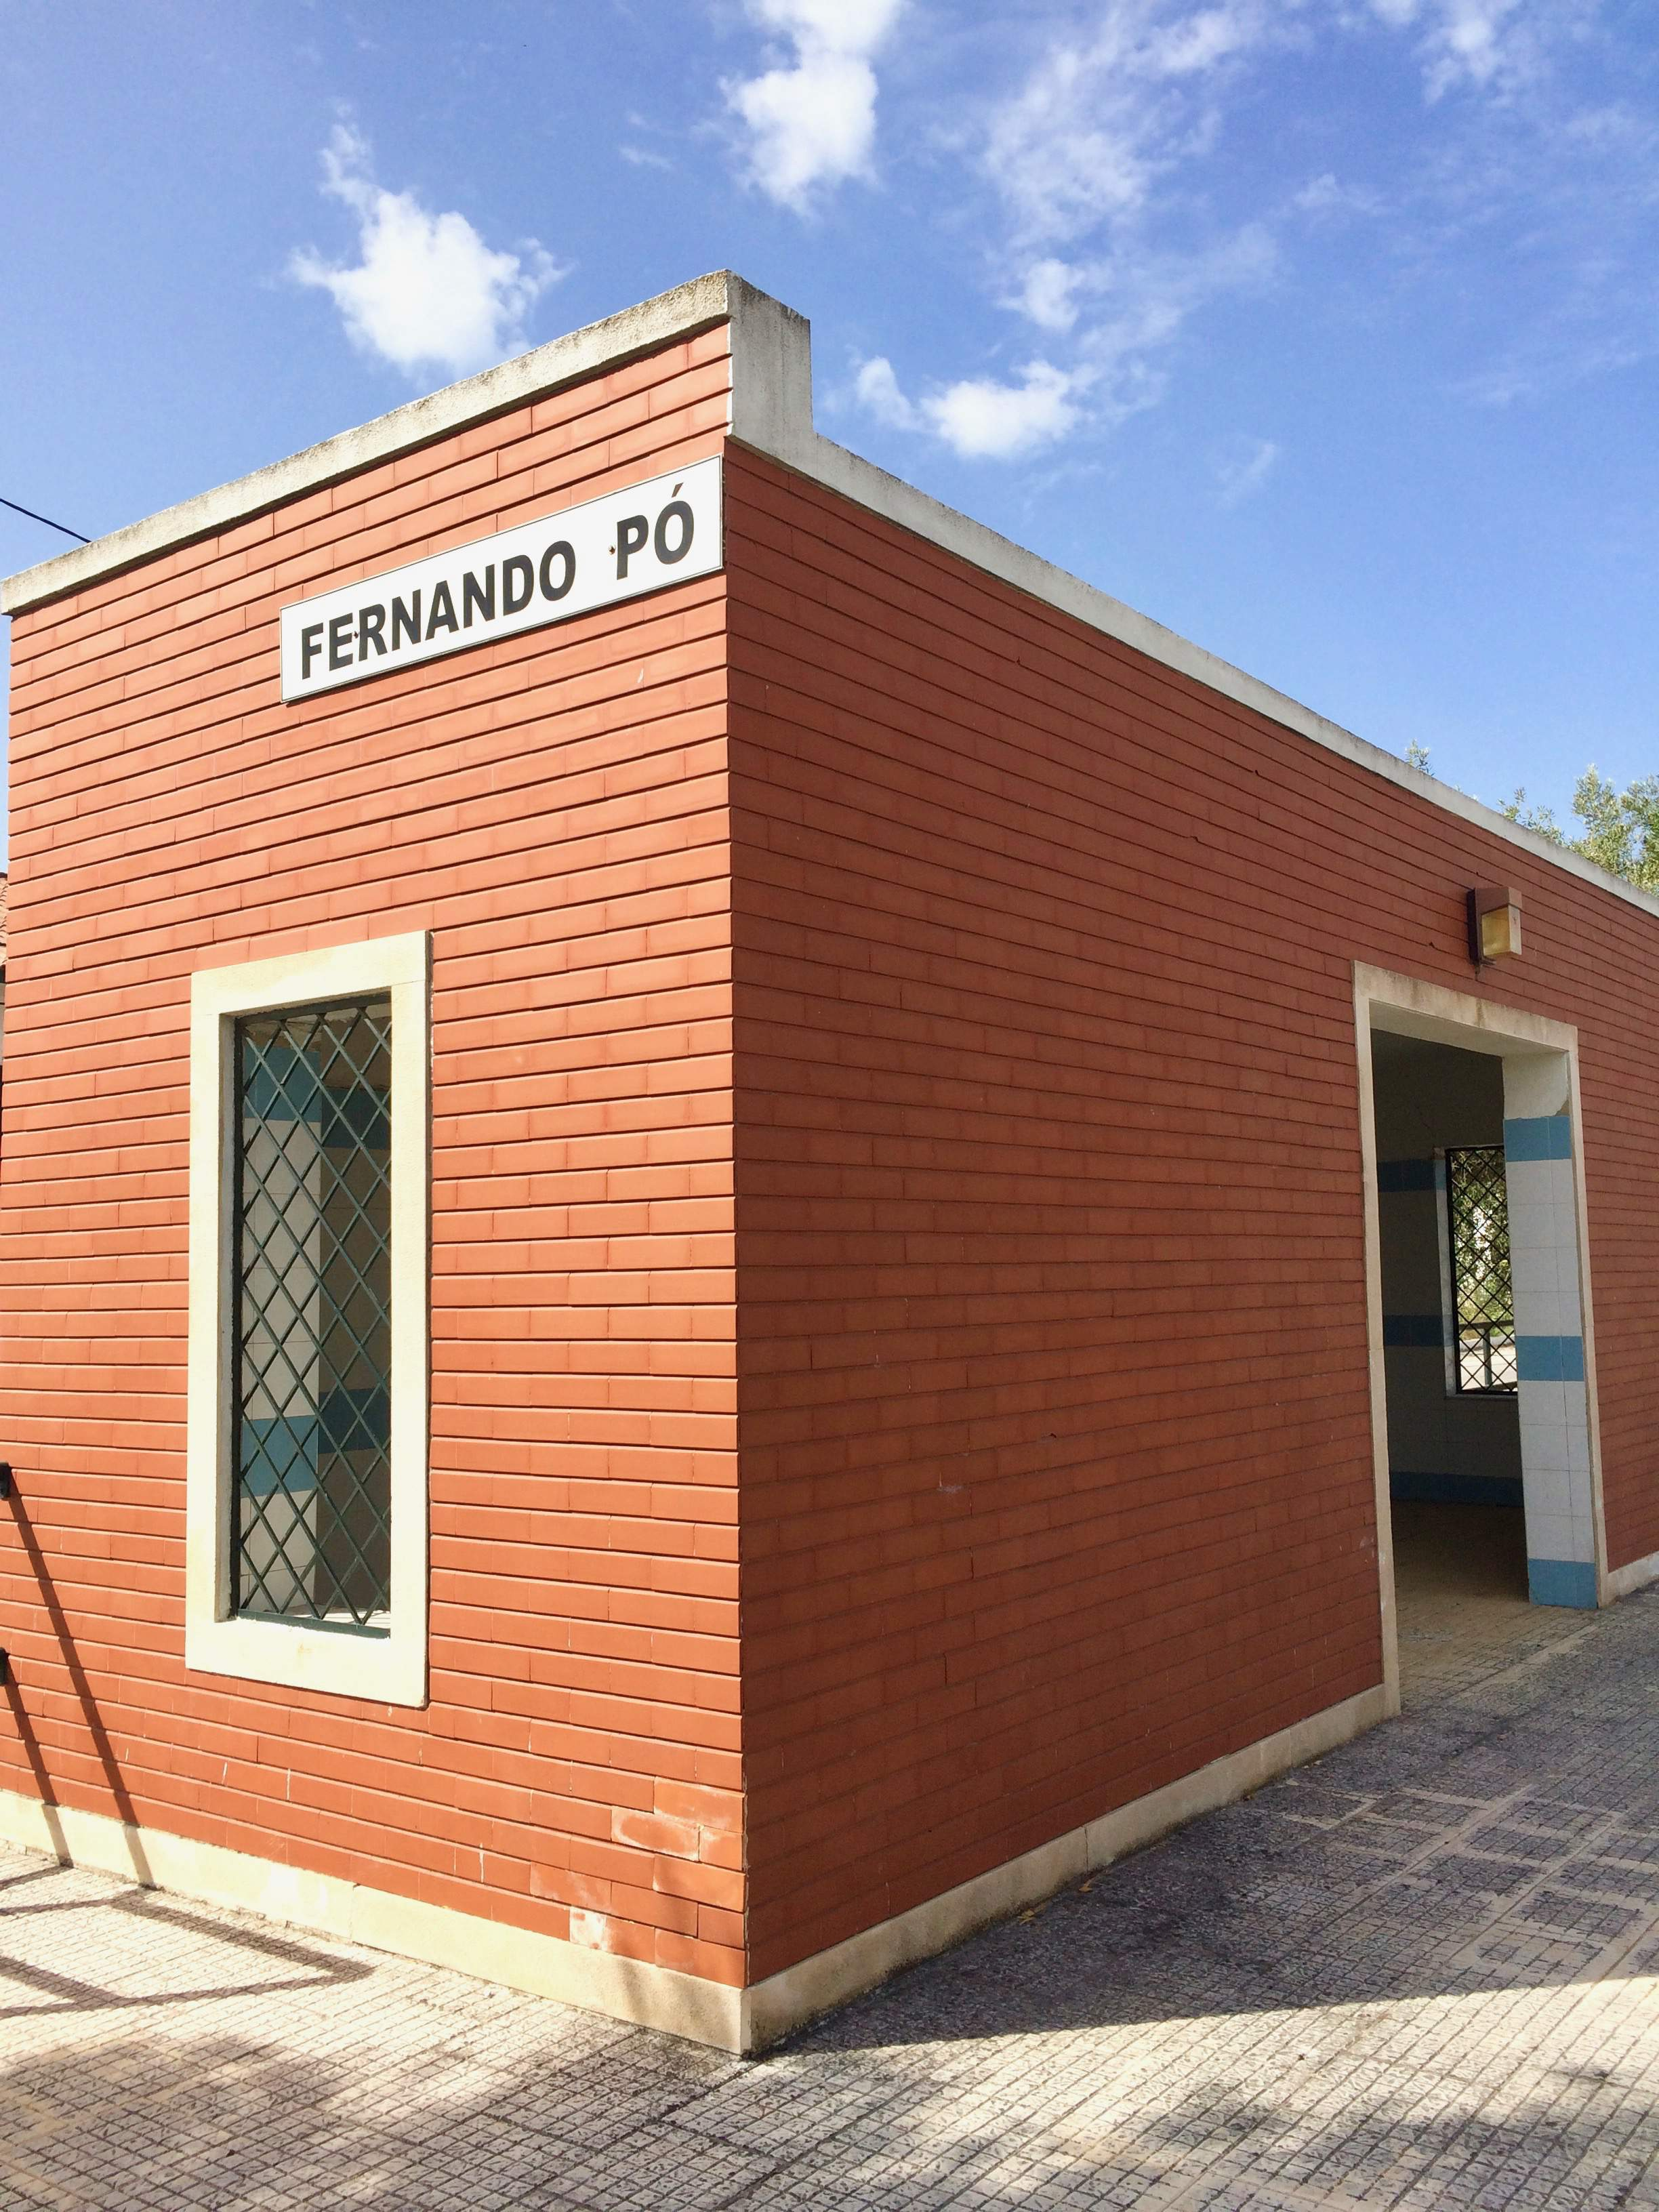 Fernando Pó train station